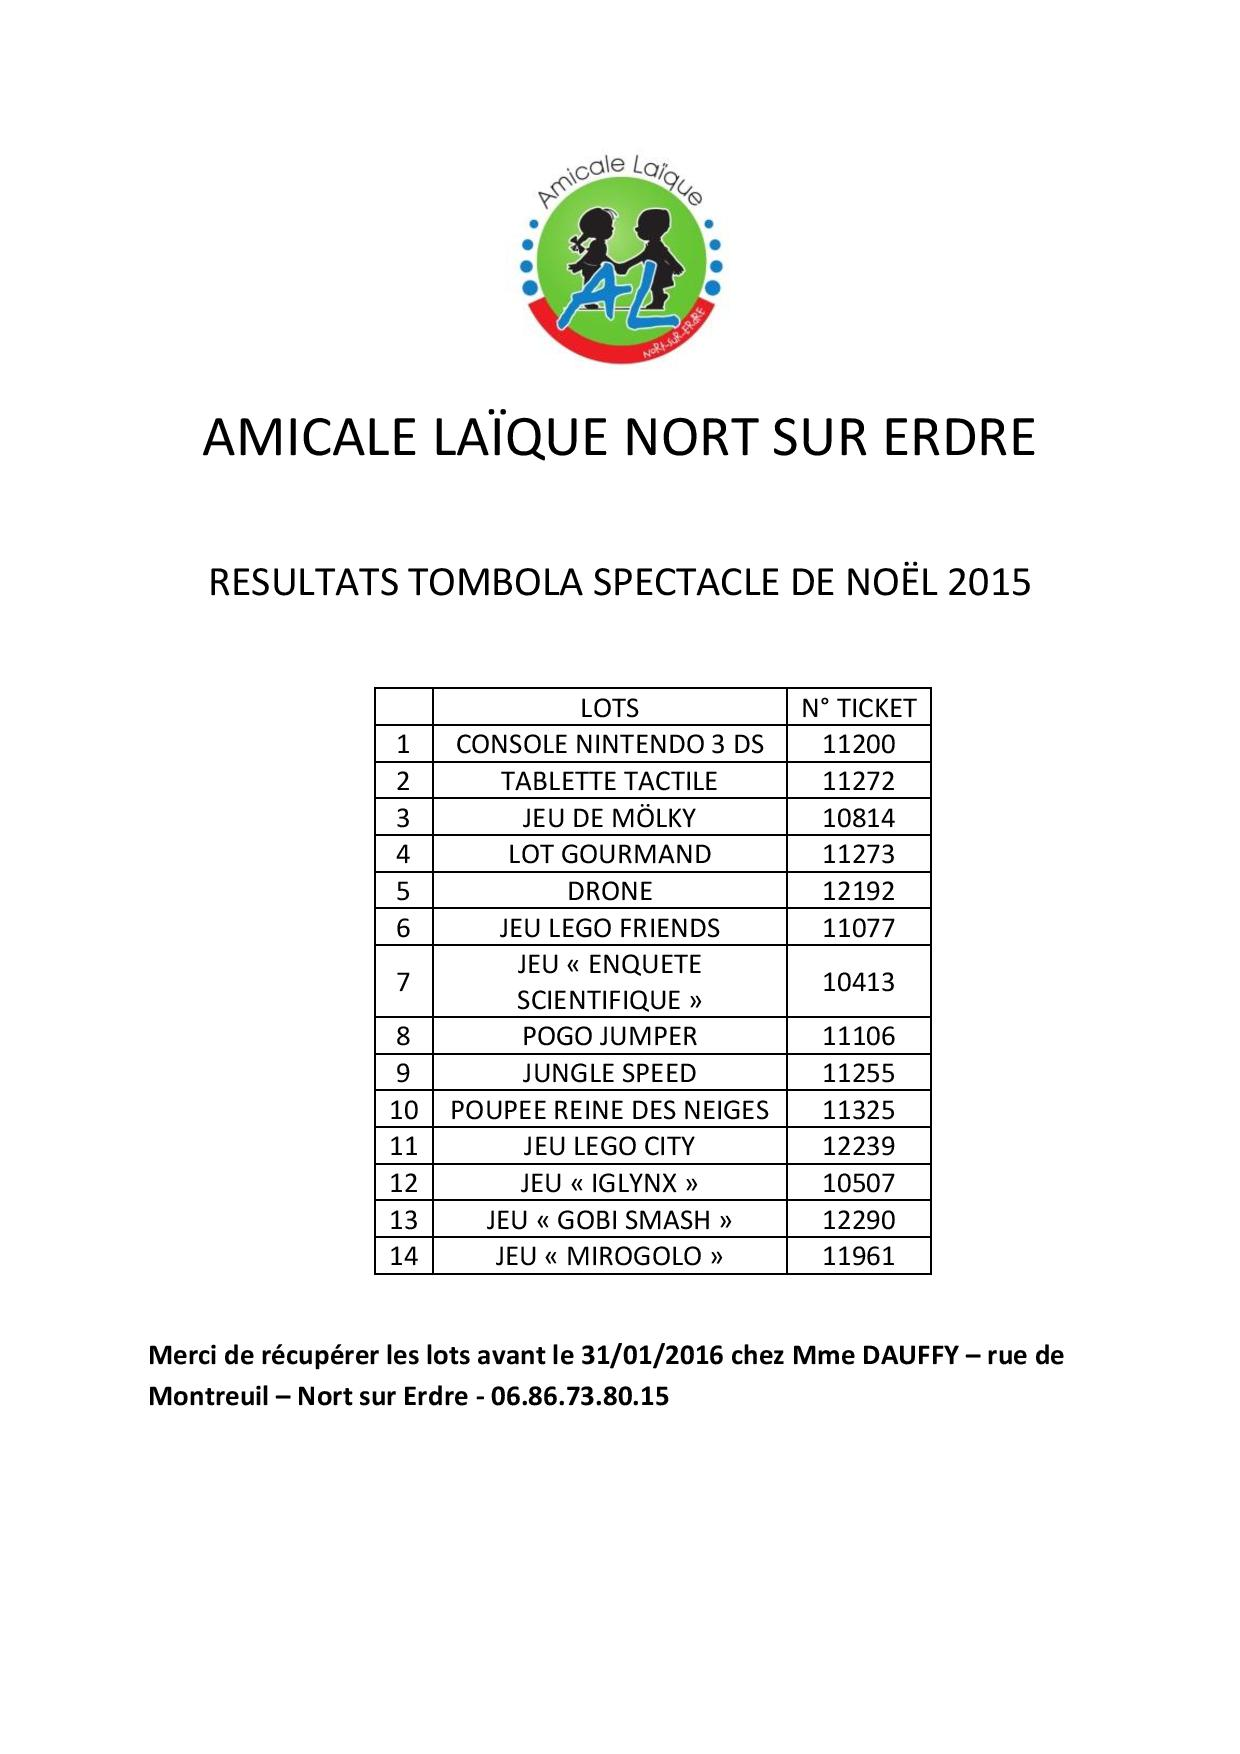 RESULTATS TOMBOLA SPECTACLE NOEL 2015-page-001